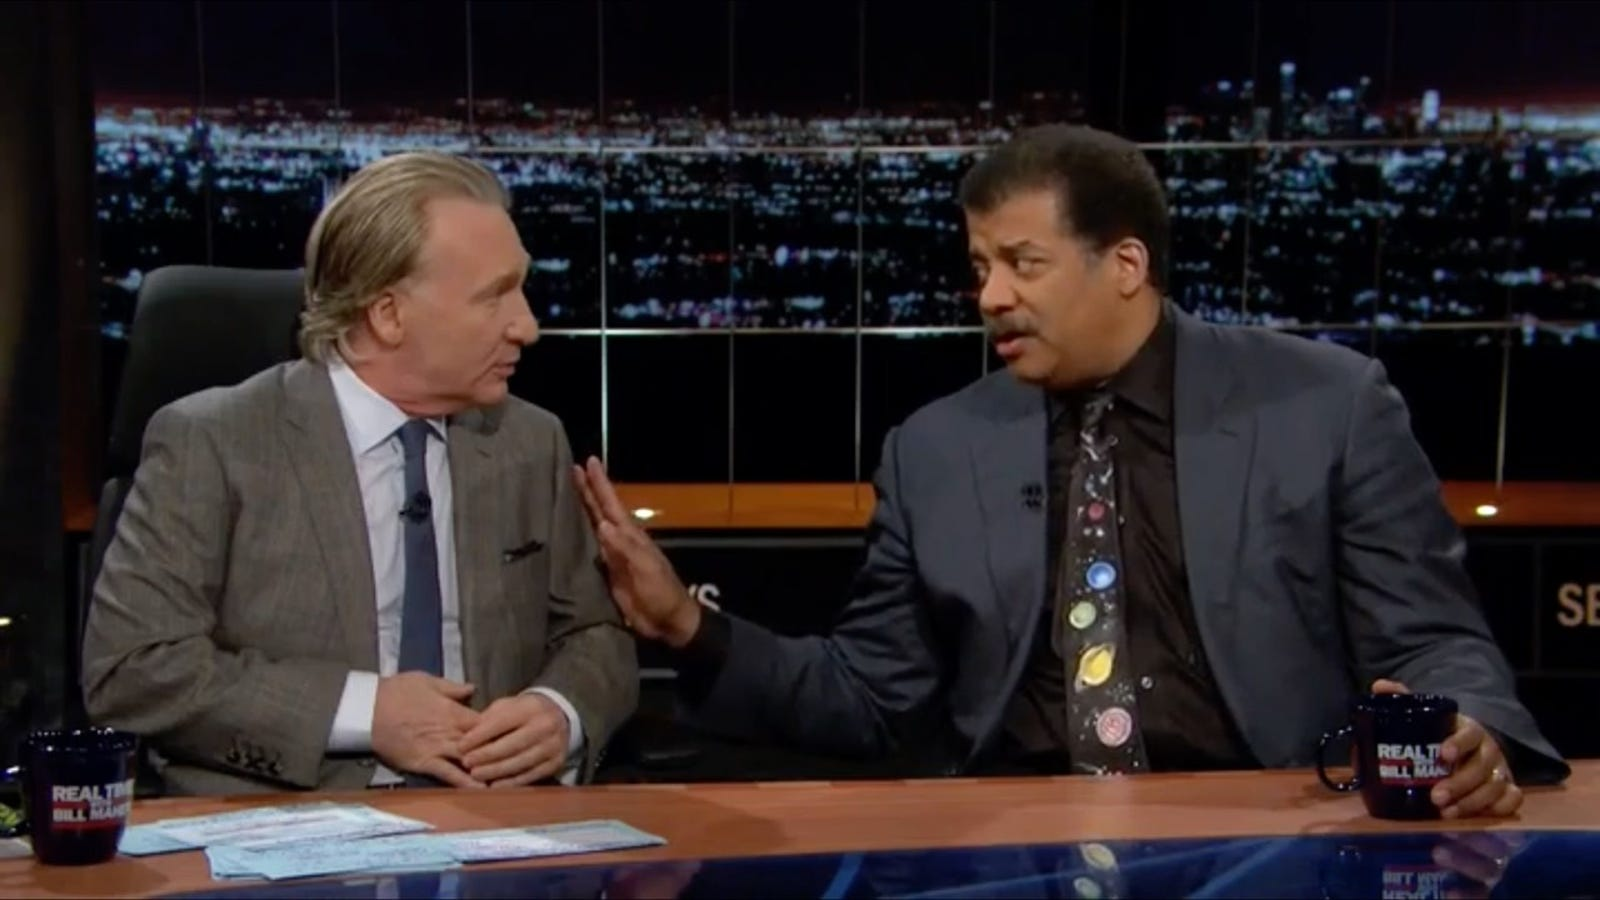 Neil DeGrasse Tyson Tells Bill Maher That Anti-Science Liberals Are Full of Shit Too